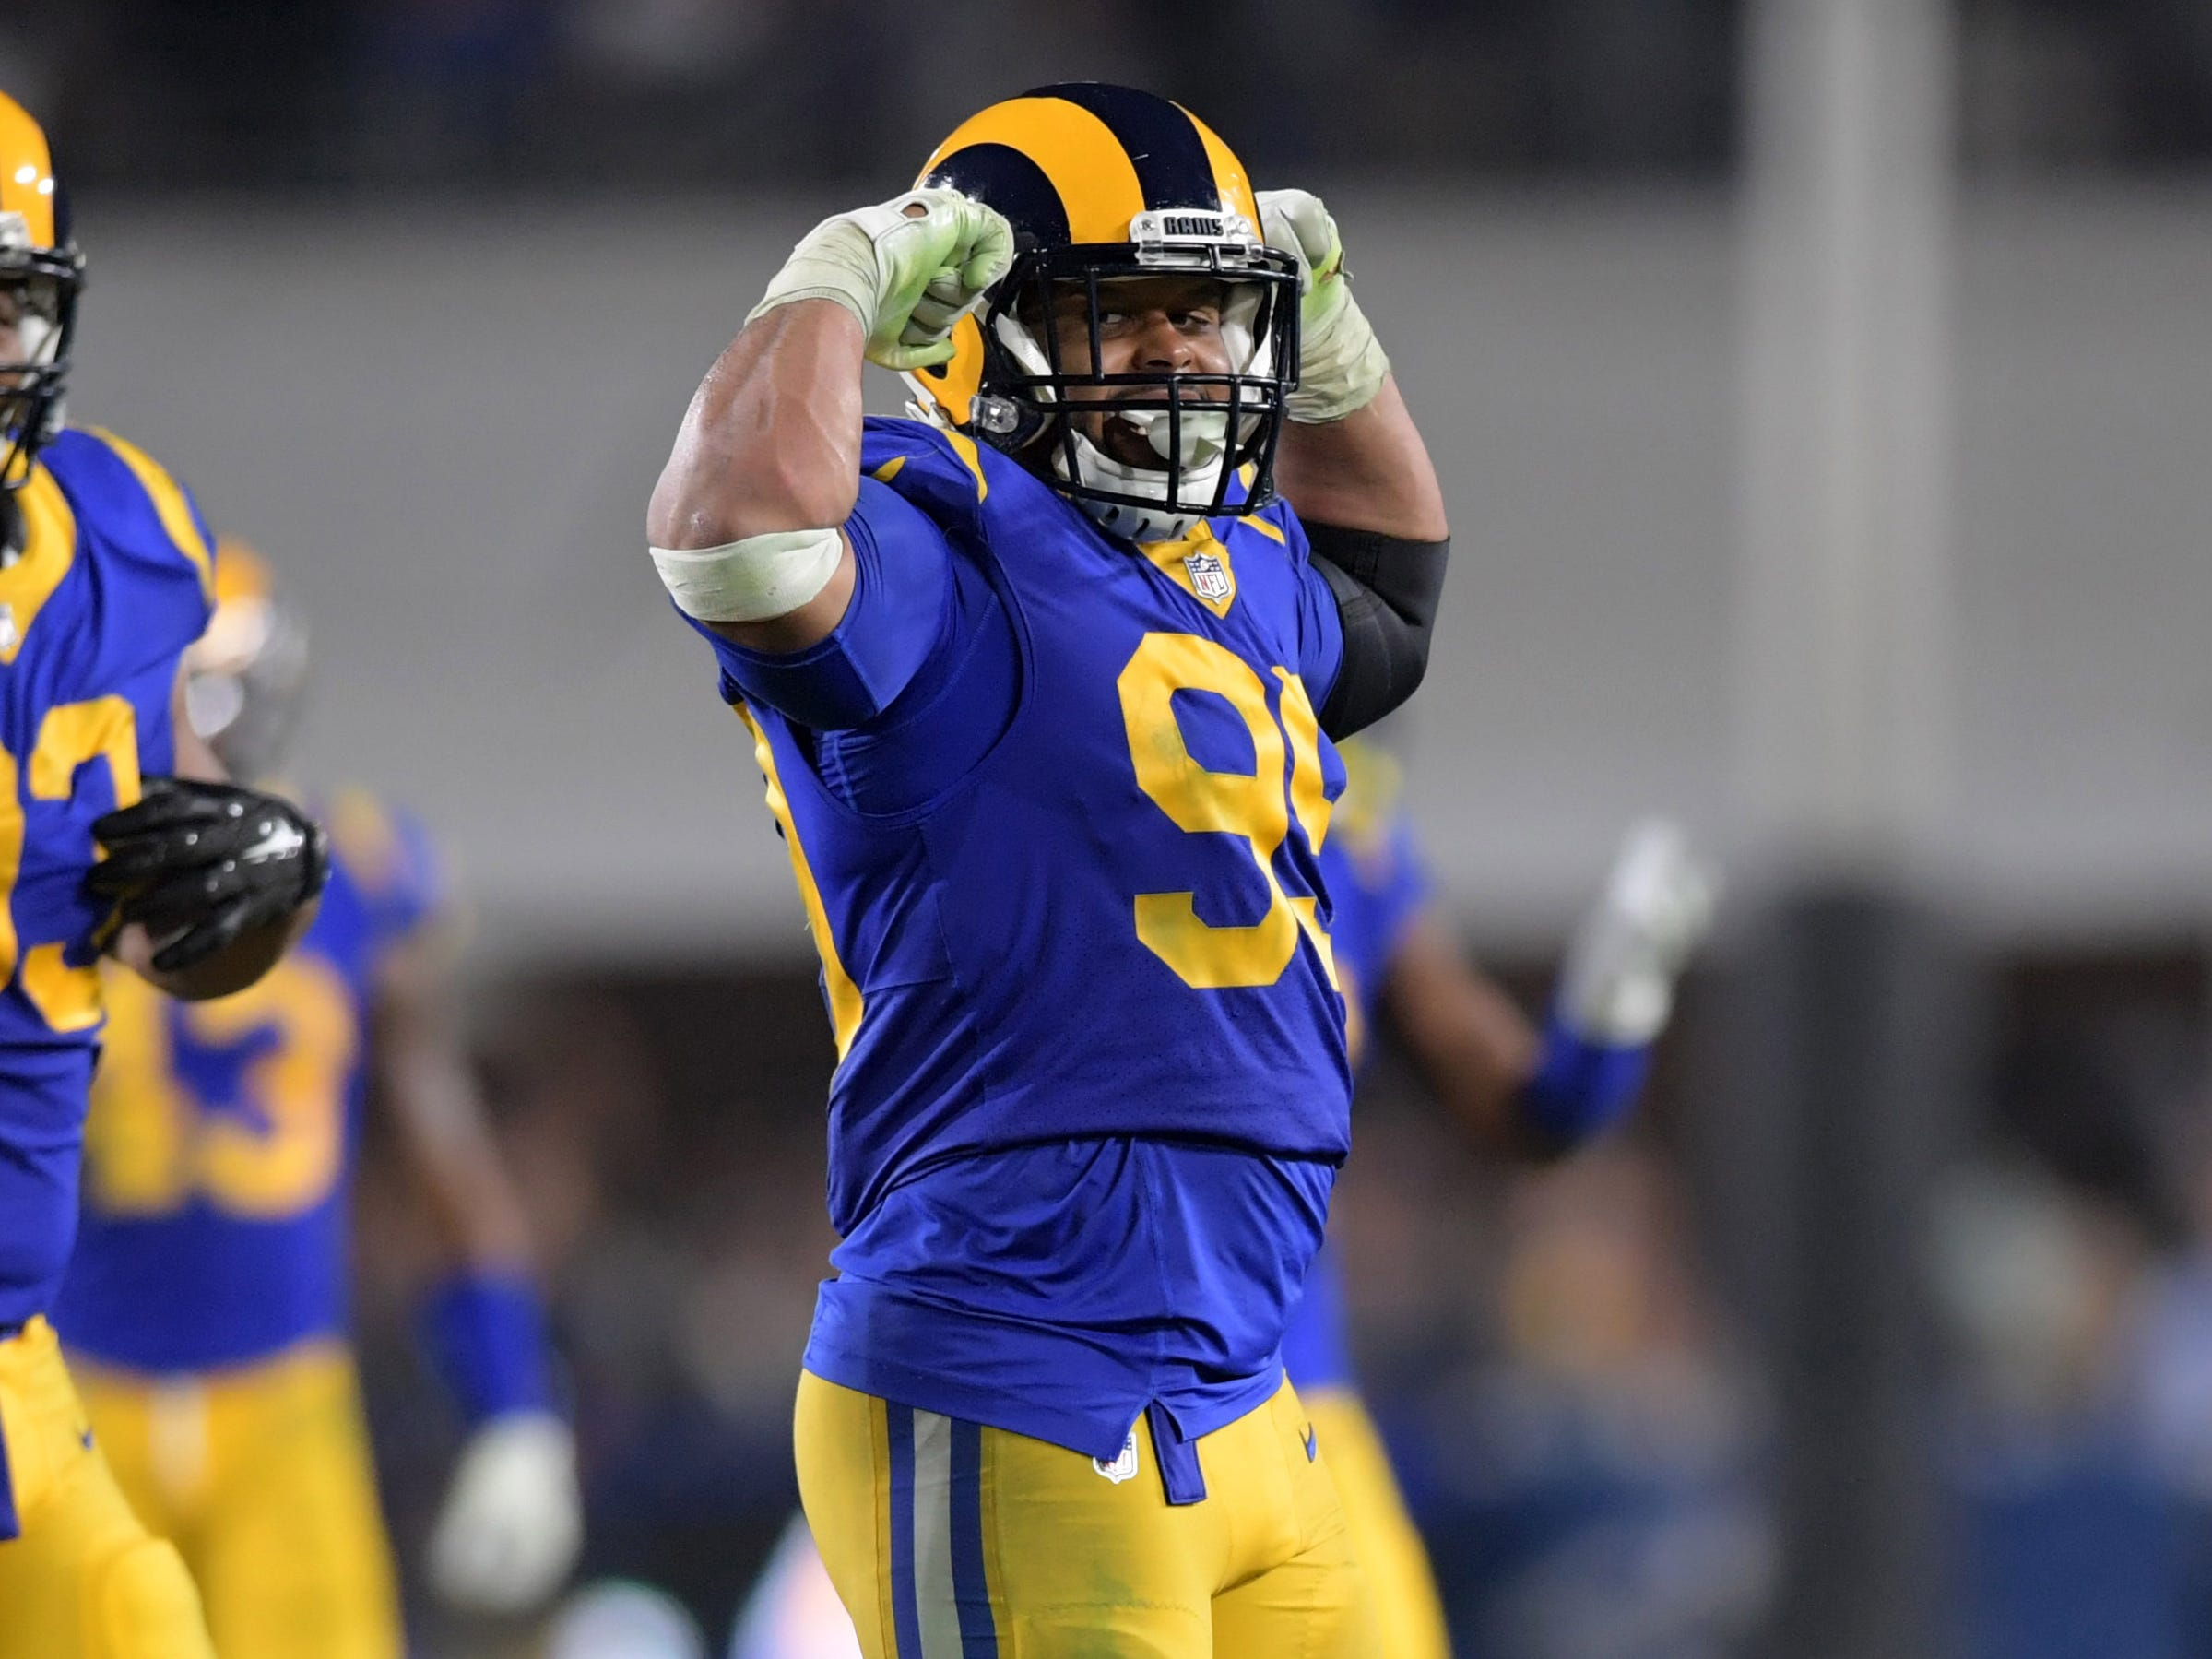 Bell Tolls: Rams defensive tackle Aaron Donald making his case for NFL MVP